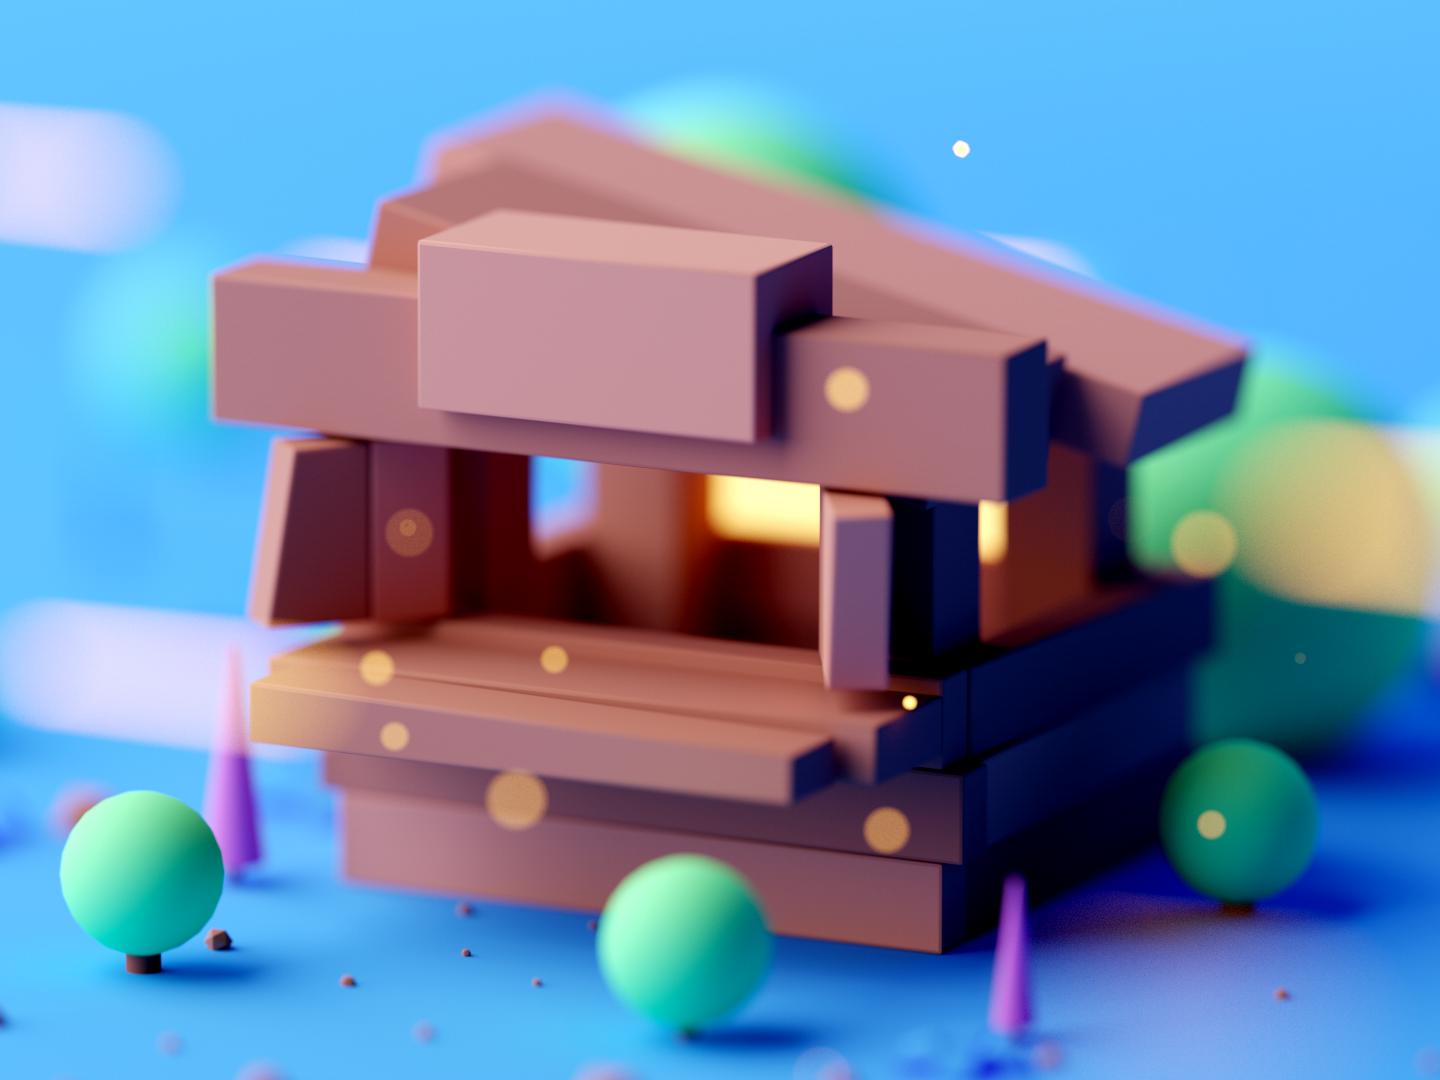 Wooden Tent game asset game design design cinema4d forest game building fantasy illustration cartoon low poly isometric room game lowpoly octane cinema 4d 3d c4d isometric